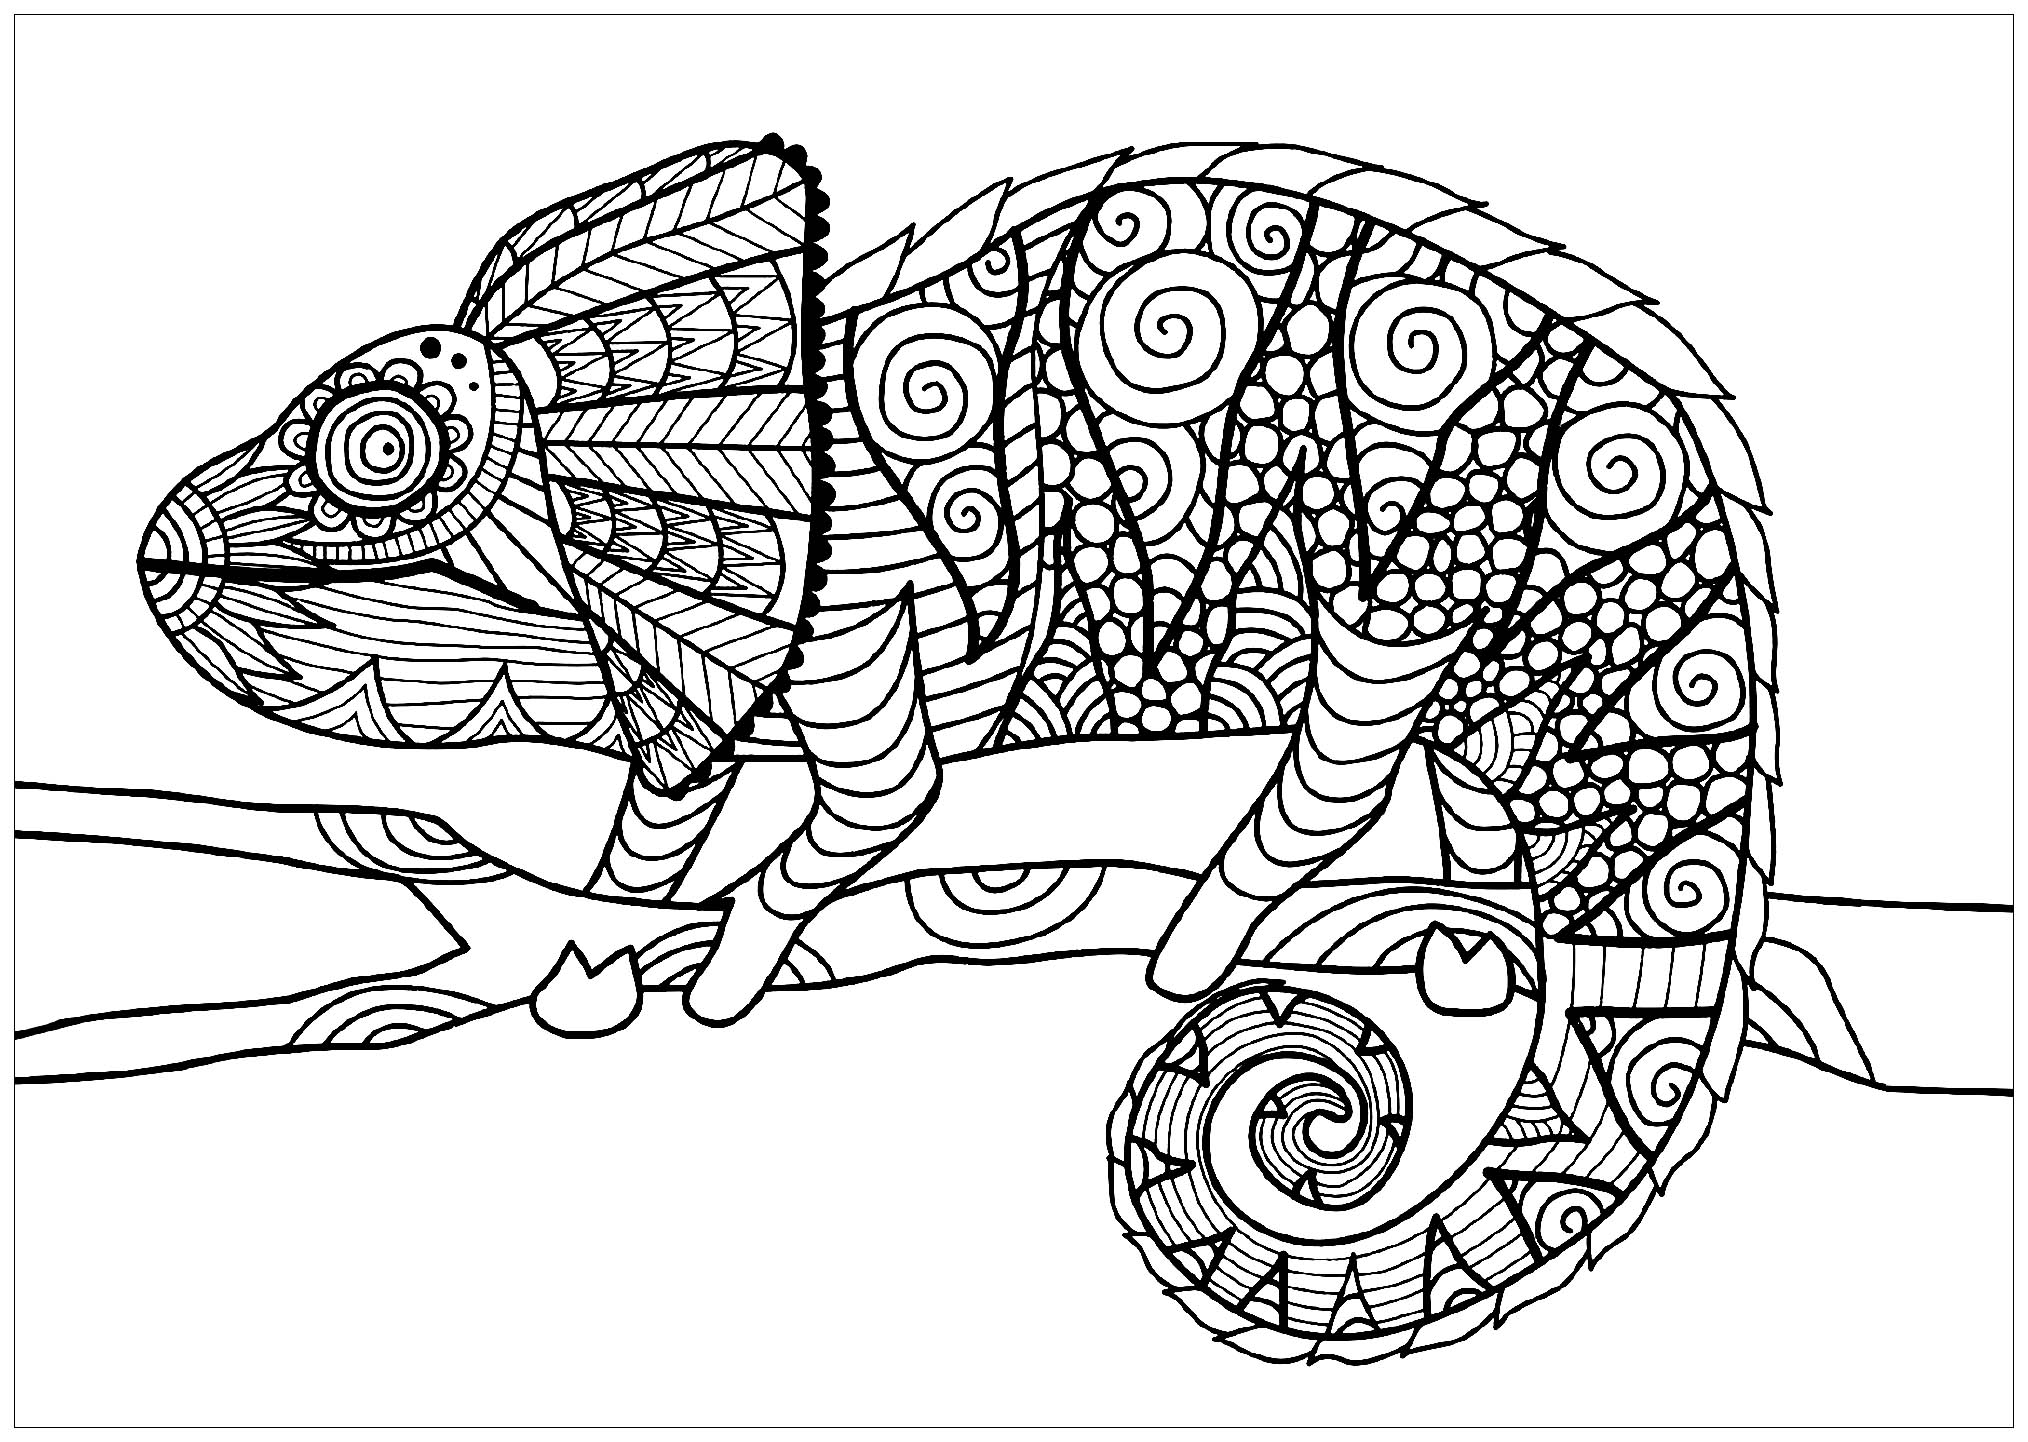 chameleon coloring pictures chameleon coloring pages to download and print for free pictures chameleon coloring